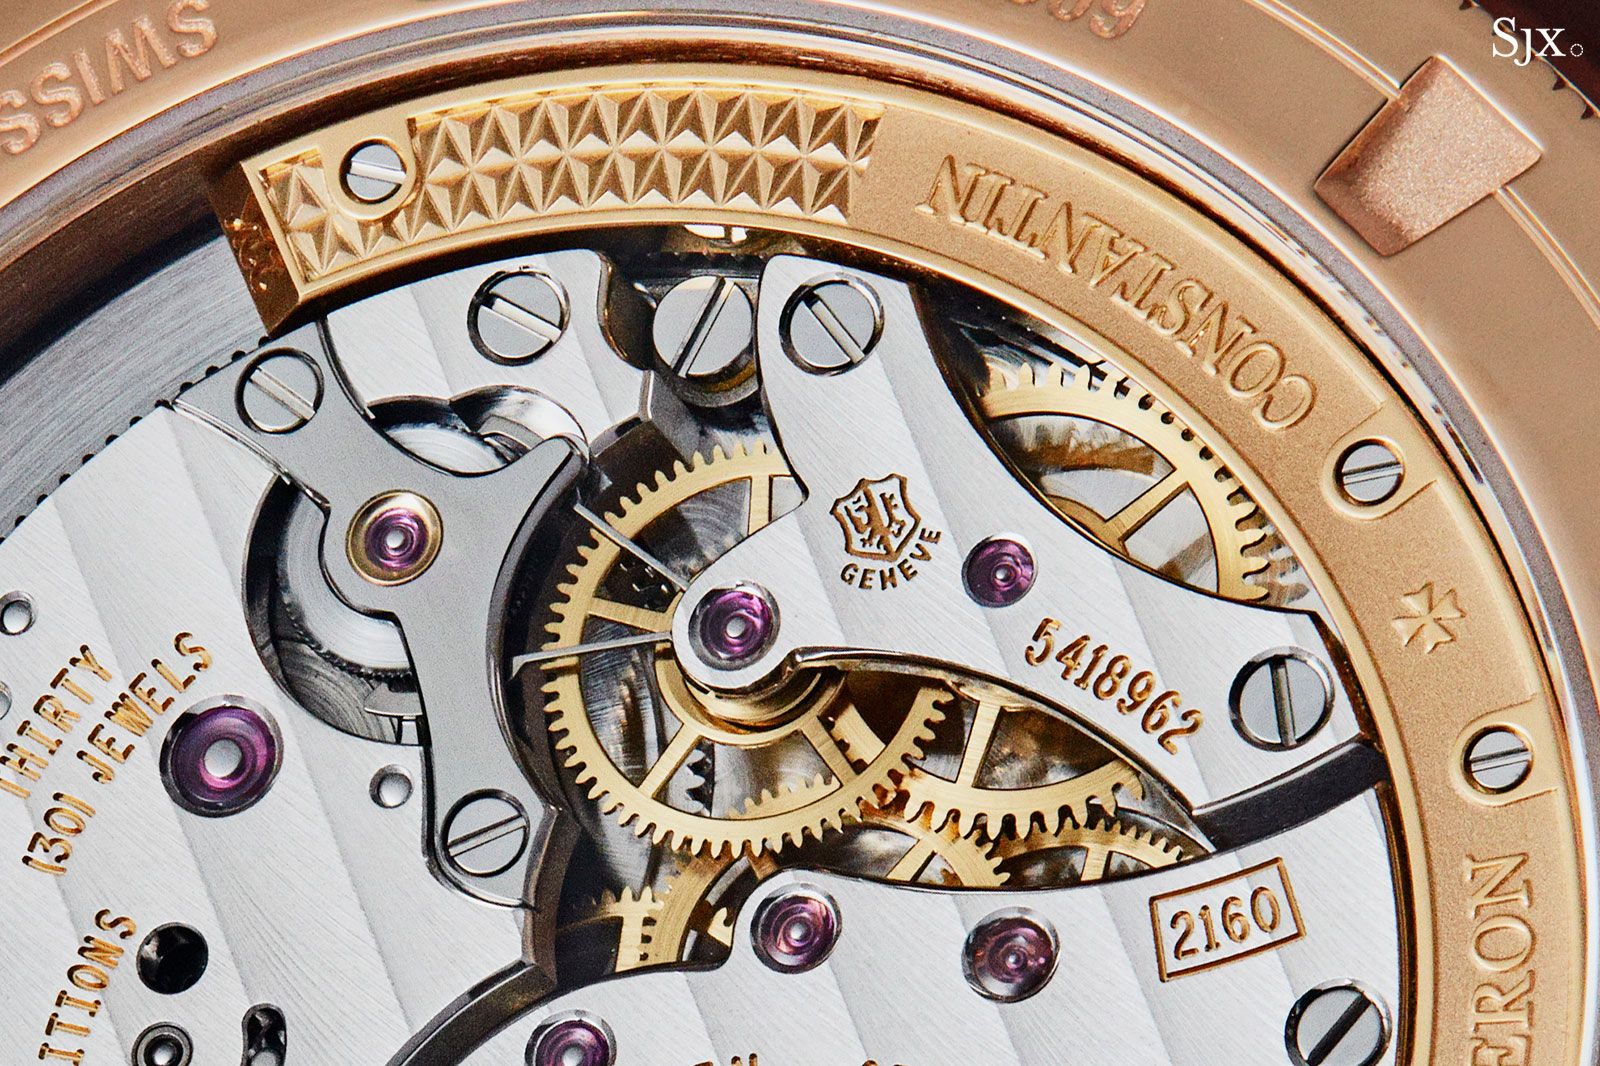 Vacheron Constantin Traditionnelle tourbillon automatic 7